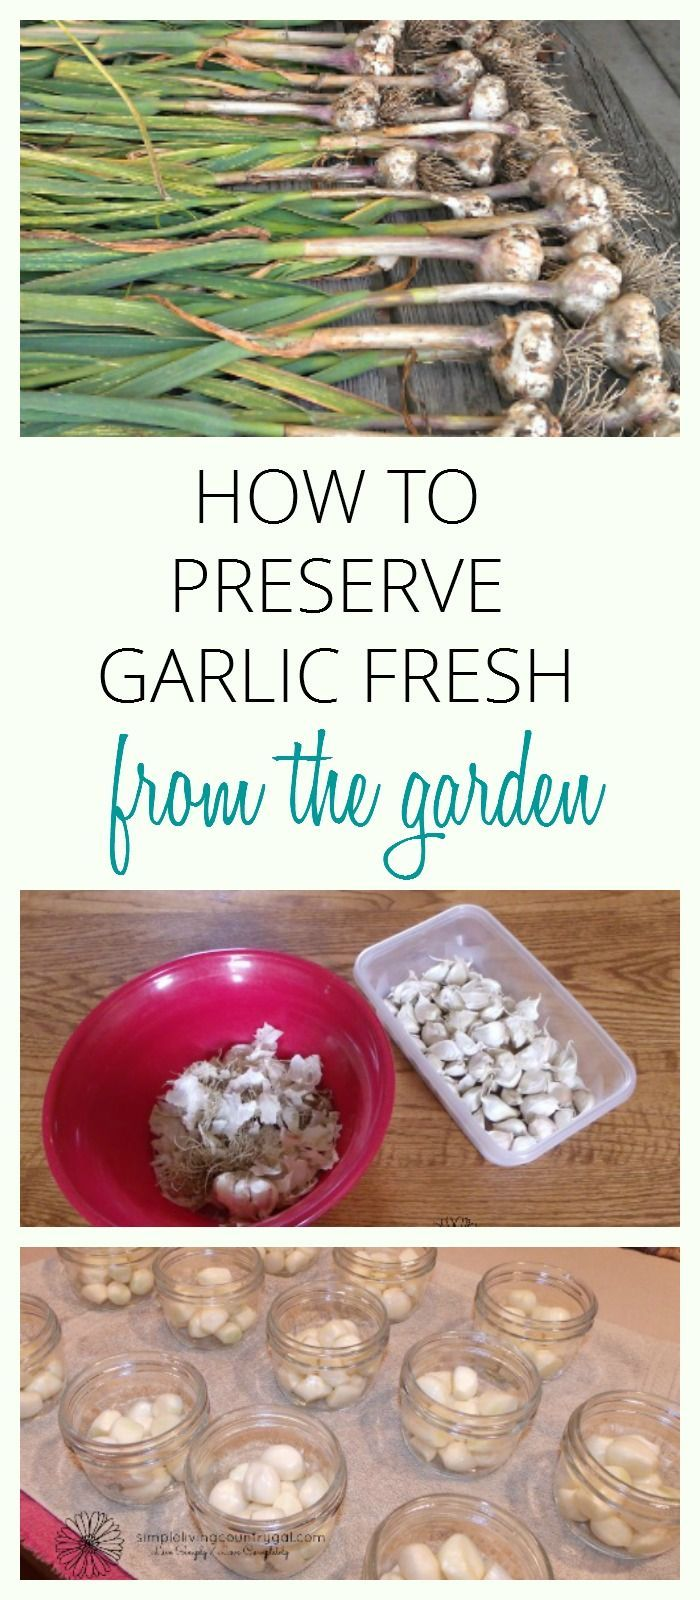 Enjoy fresh garlic year round with this easy step by step guide.  via @SLcountrygal